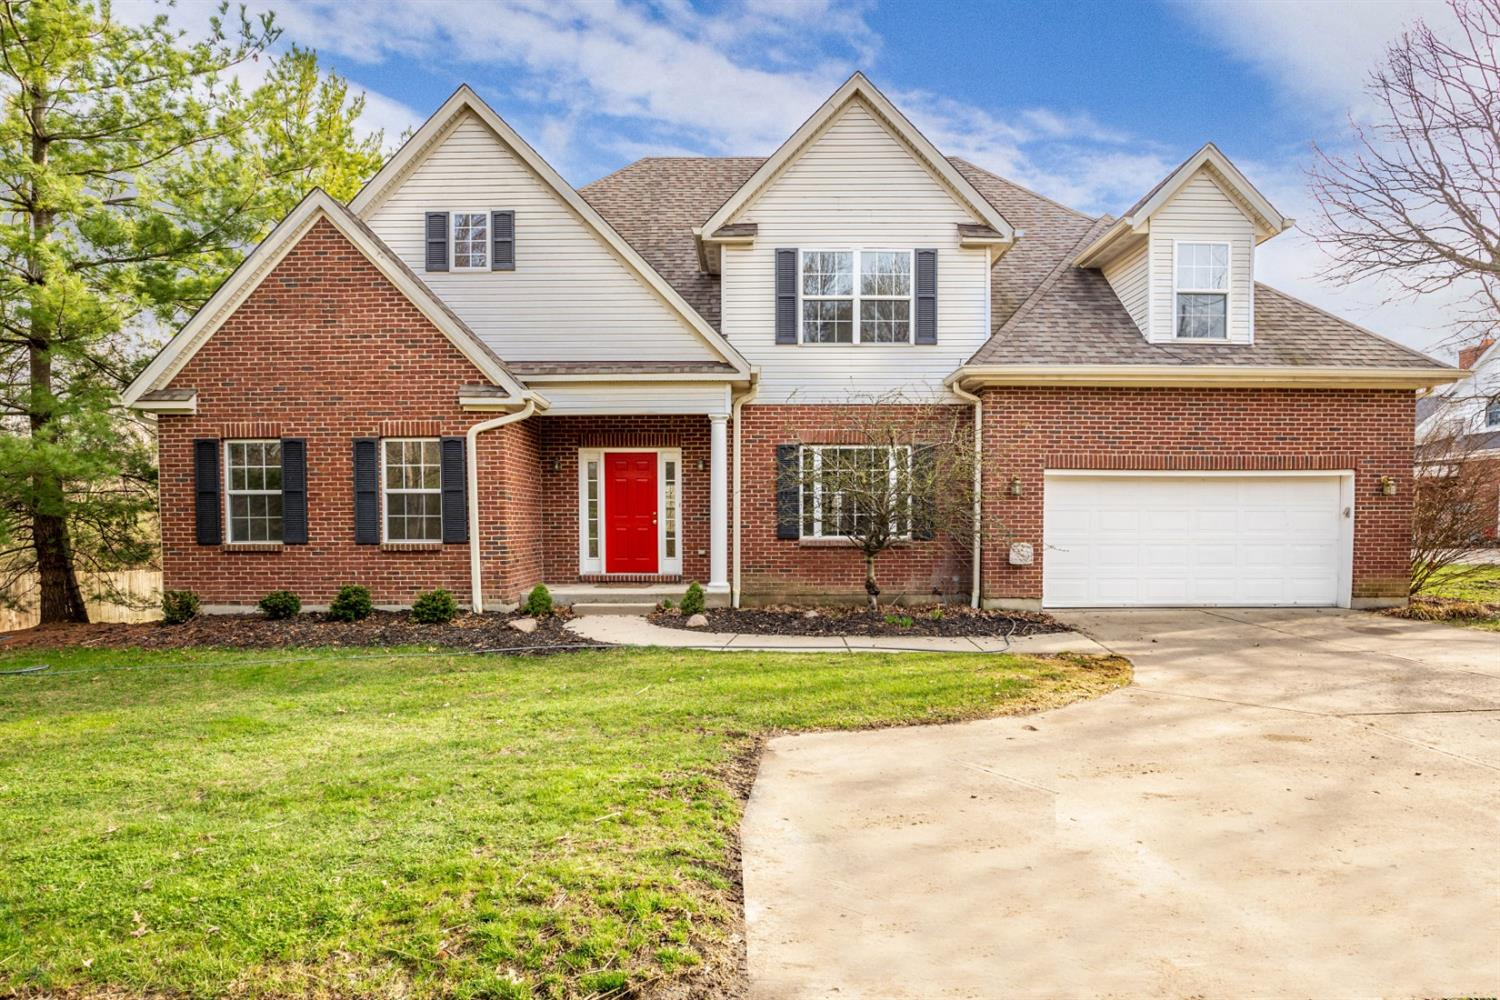 Photo 2 for 8181 McCauly Ct Sharonville, OH 45241